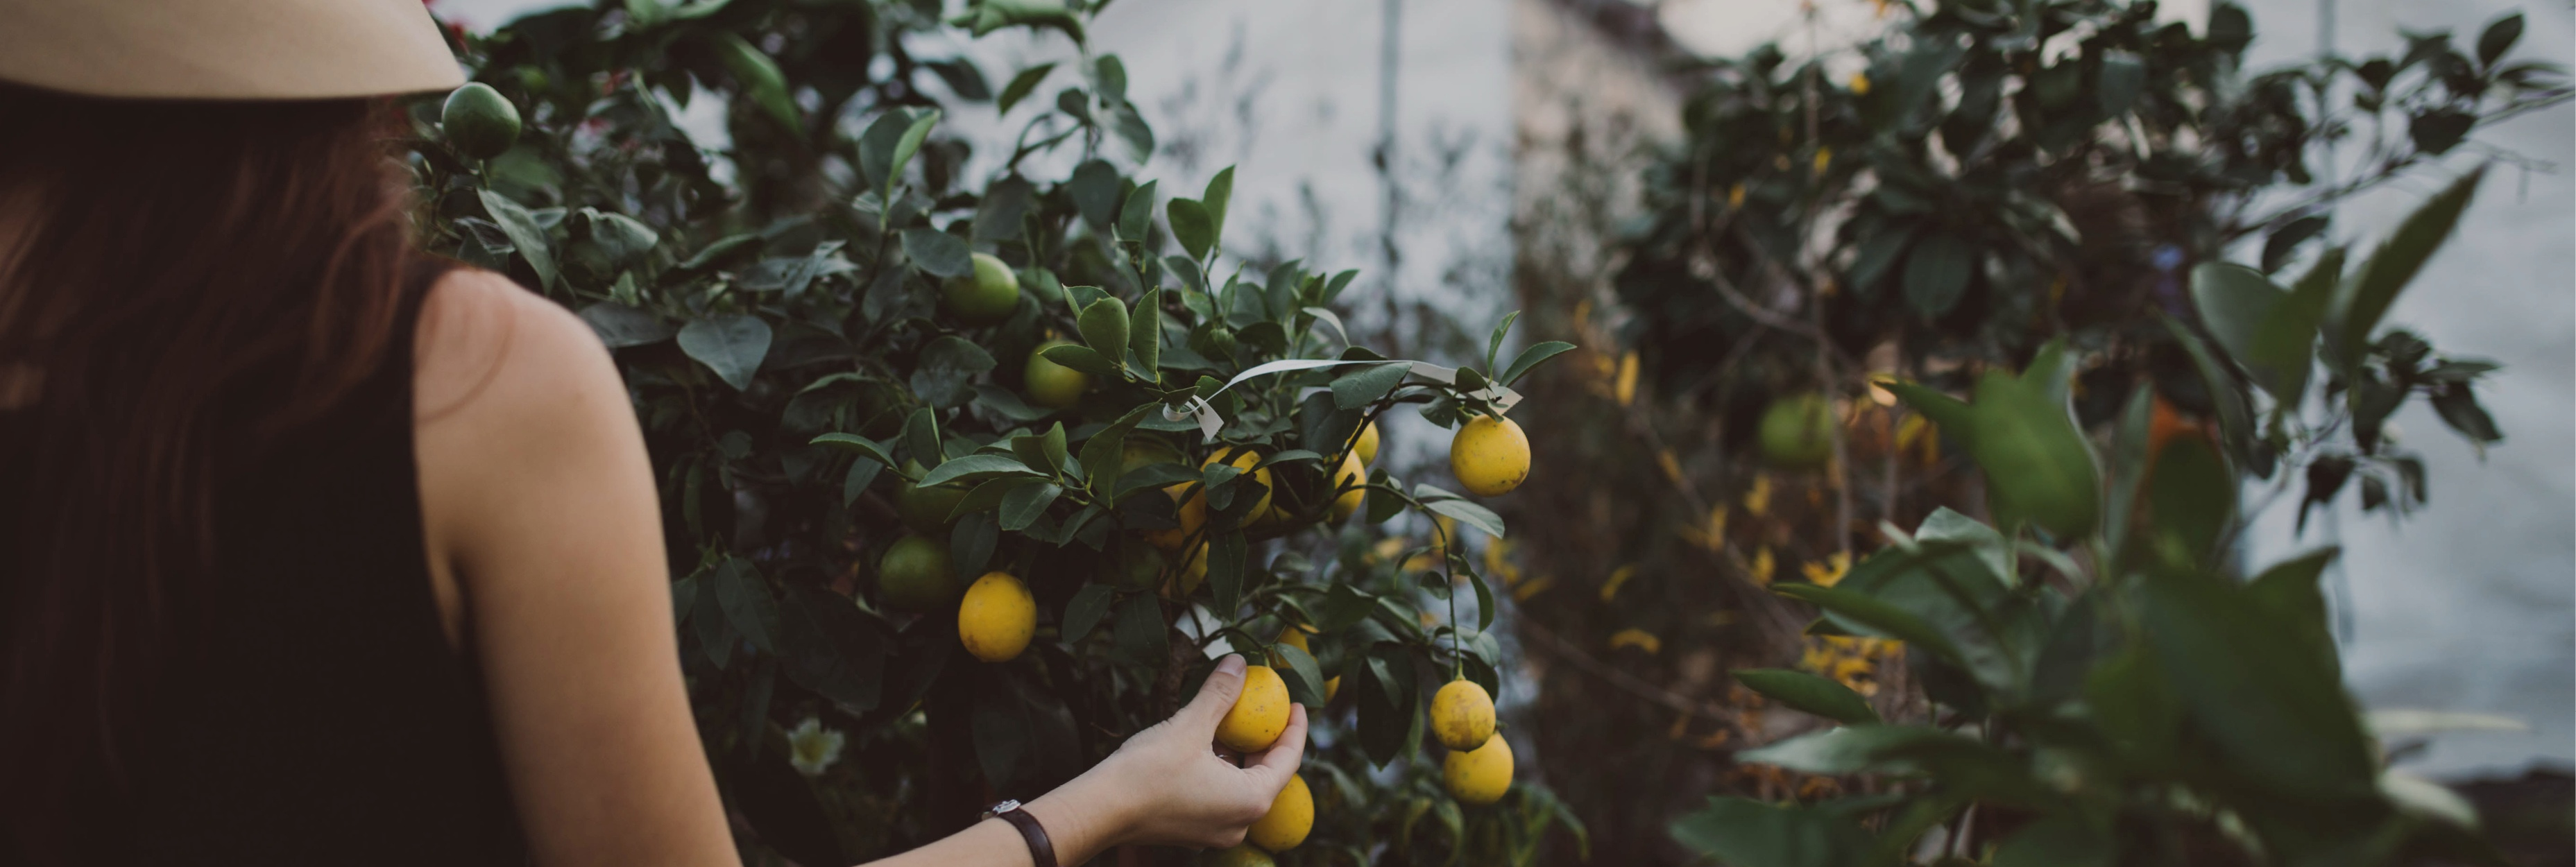 How might we use technology, new business models and design to guarantee healthy, safe and sufficient food for everyone?